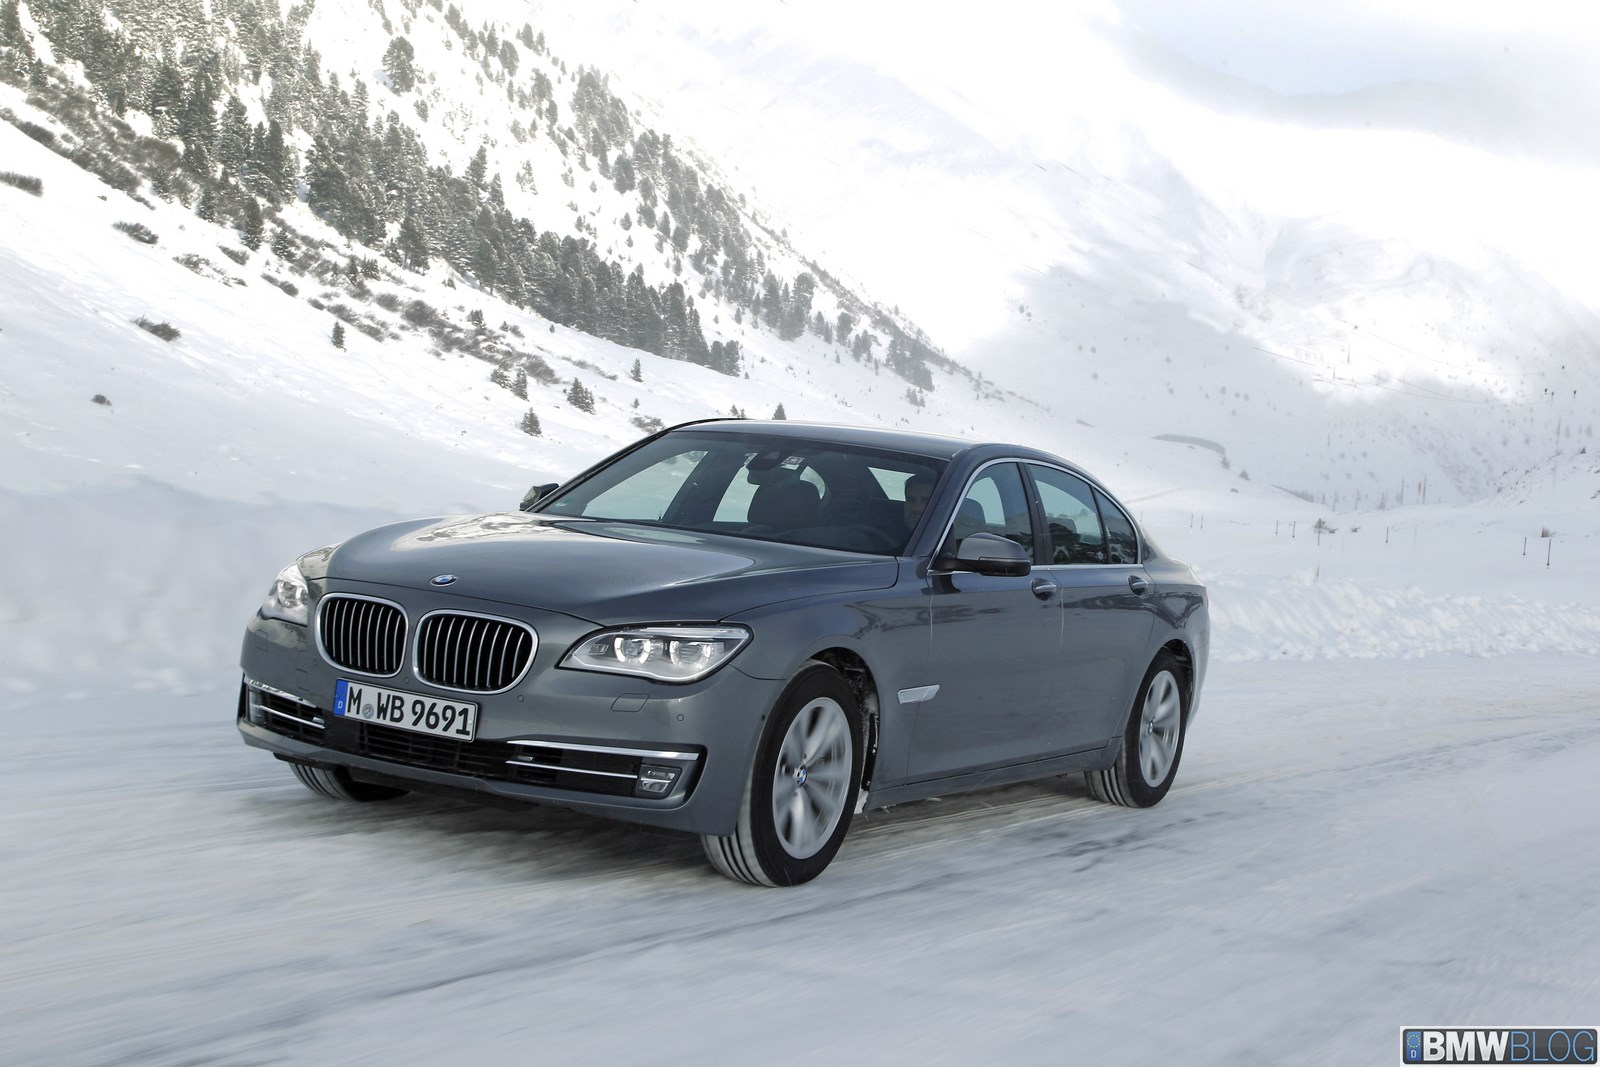 2013 Bmw Xdrive With M135i X1 K2 X6 And 7 Series